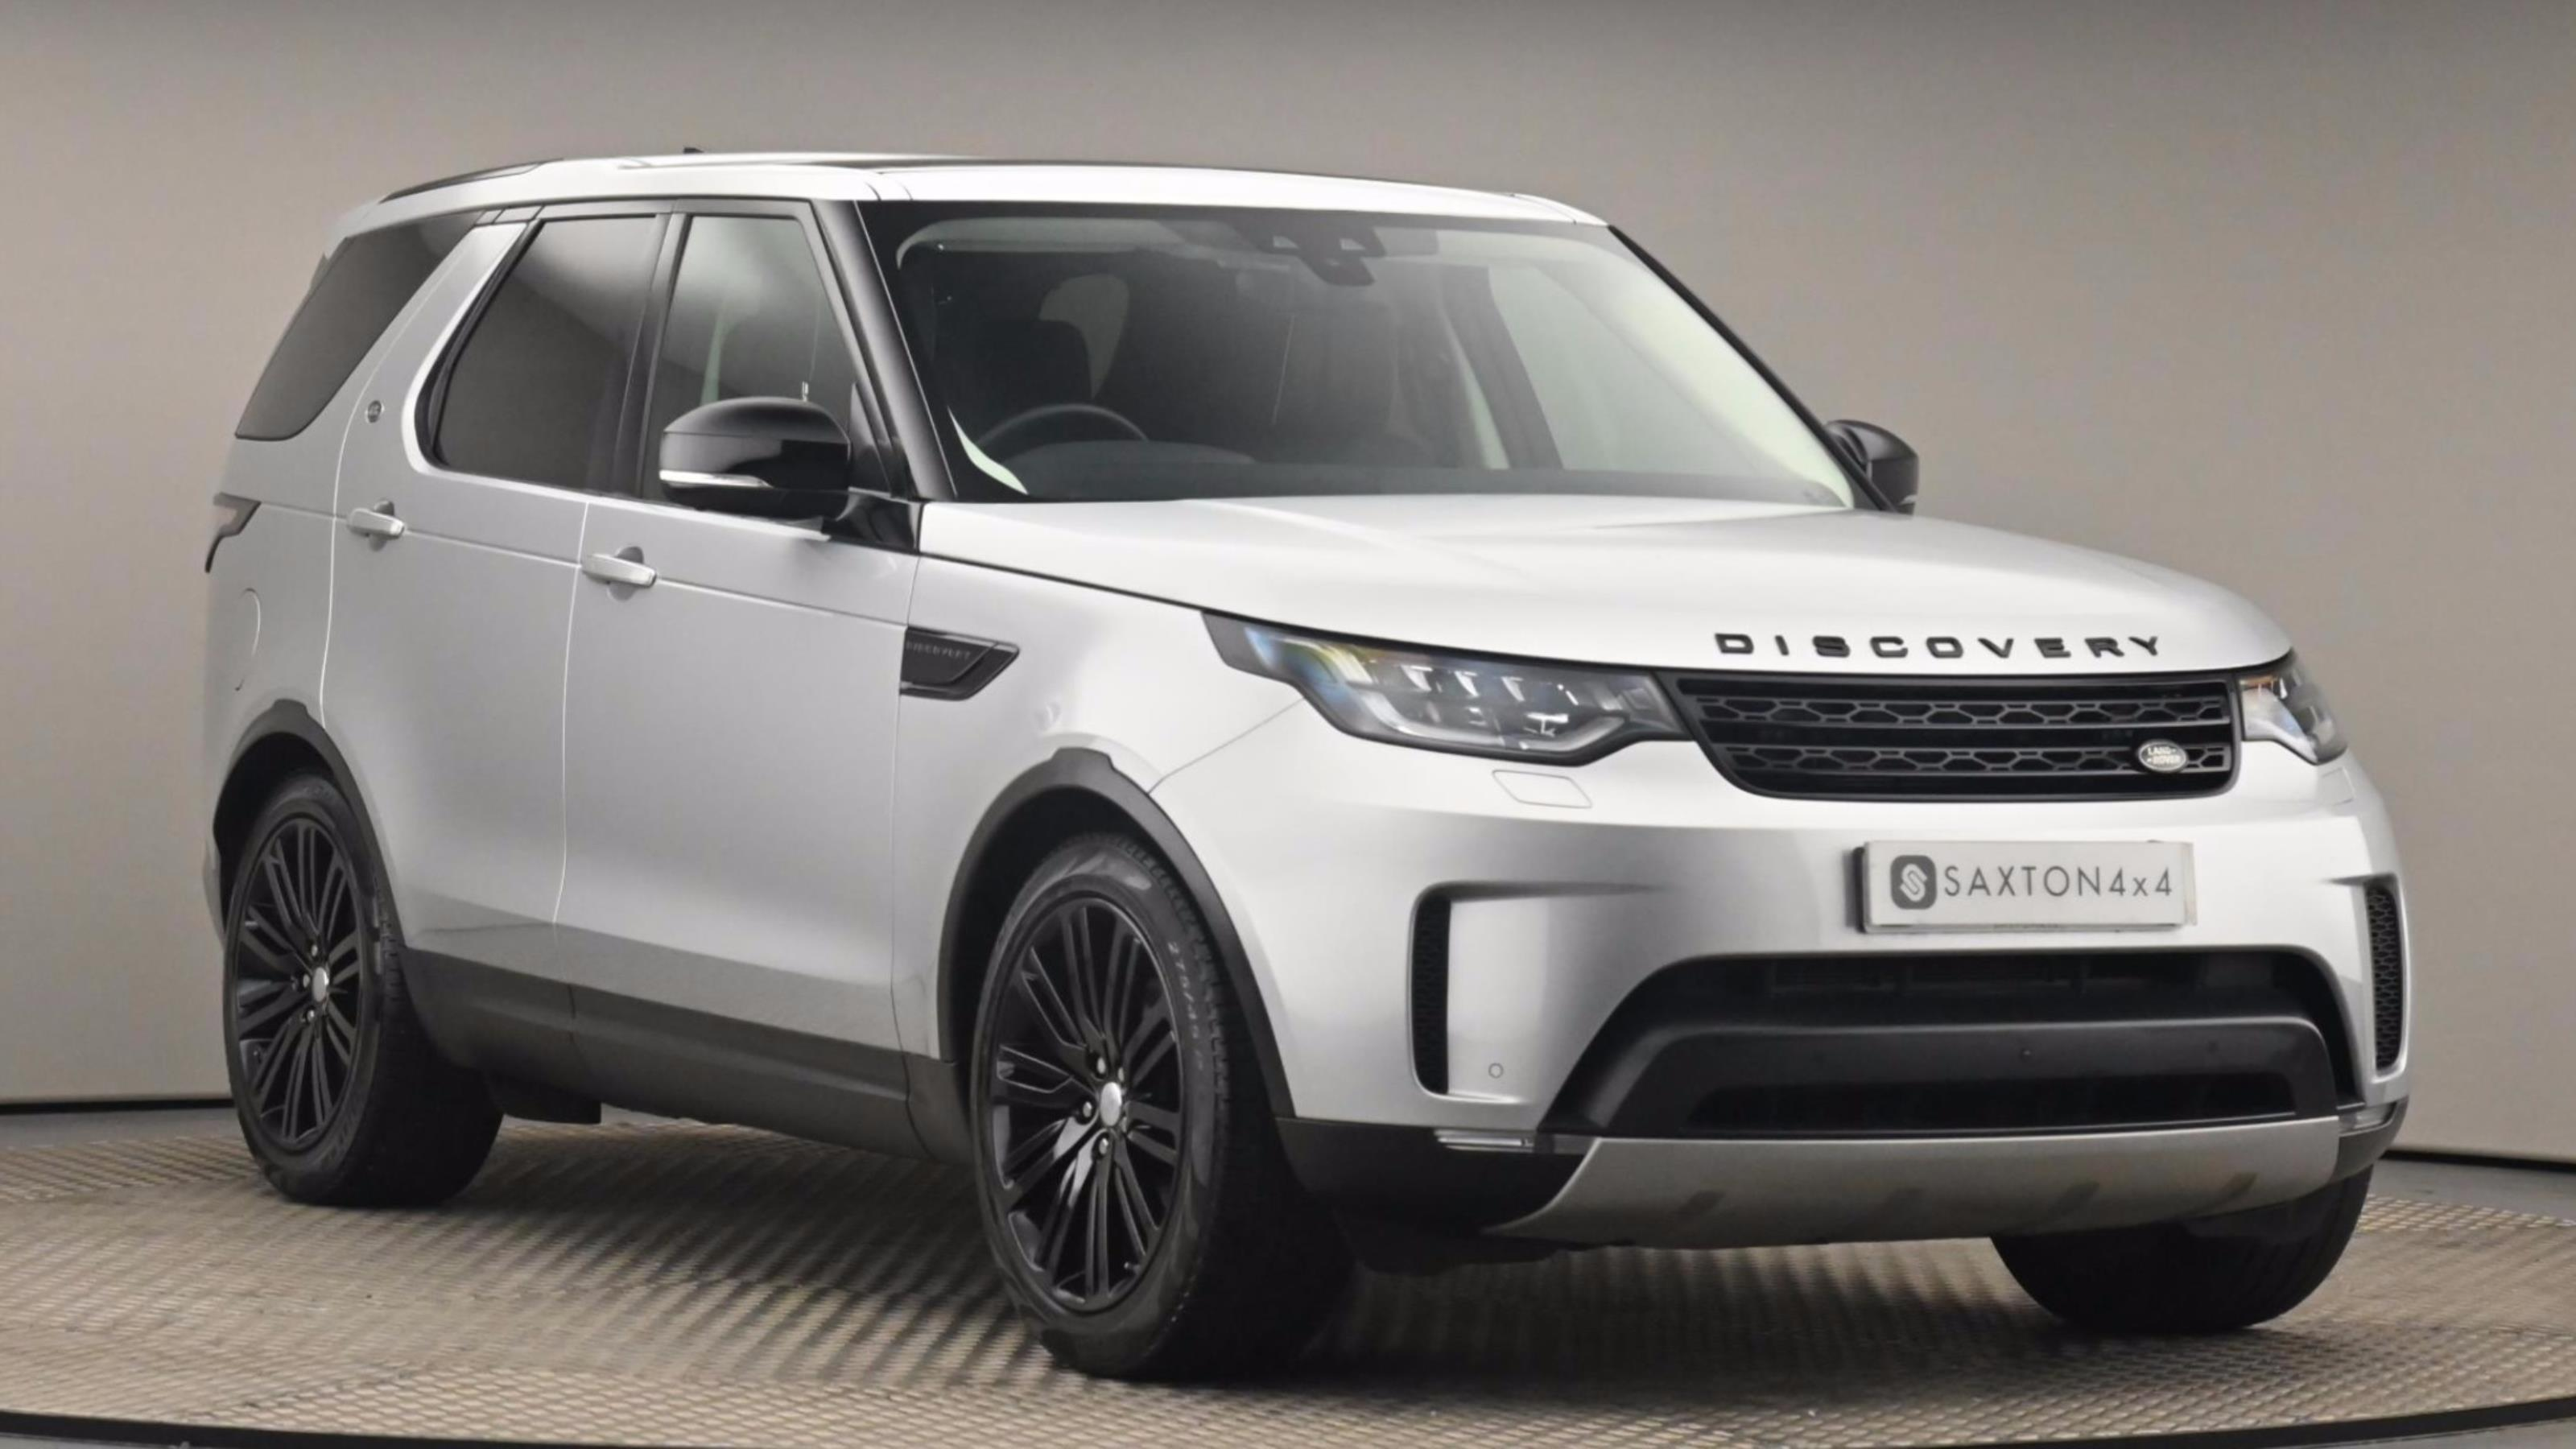 Used 2018 Land Rover DISCOVERY 3.0 TD6 HSE Luxury 5dr Auto Silver at Saxton4x4